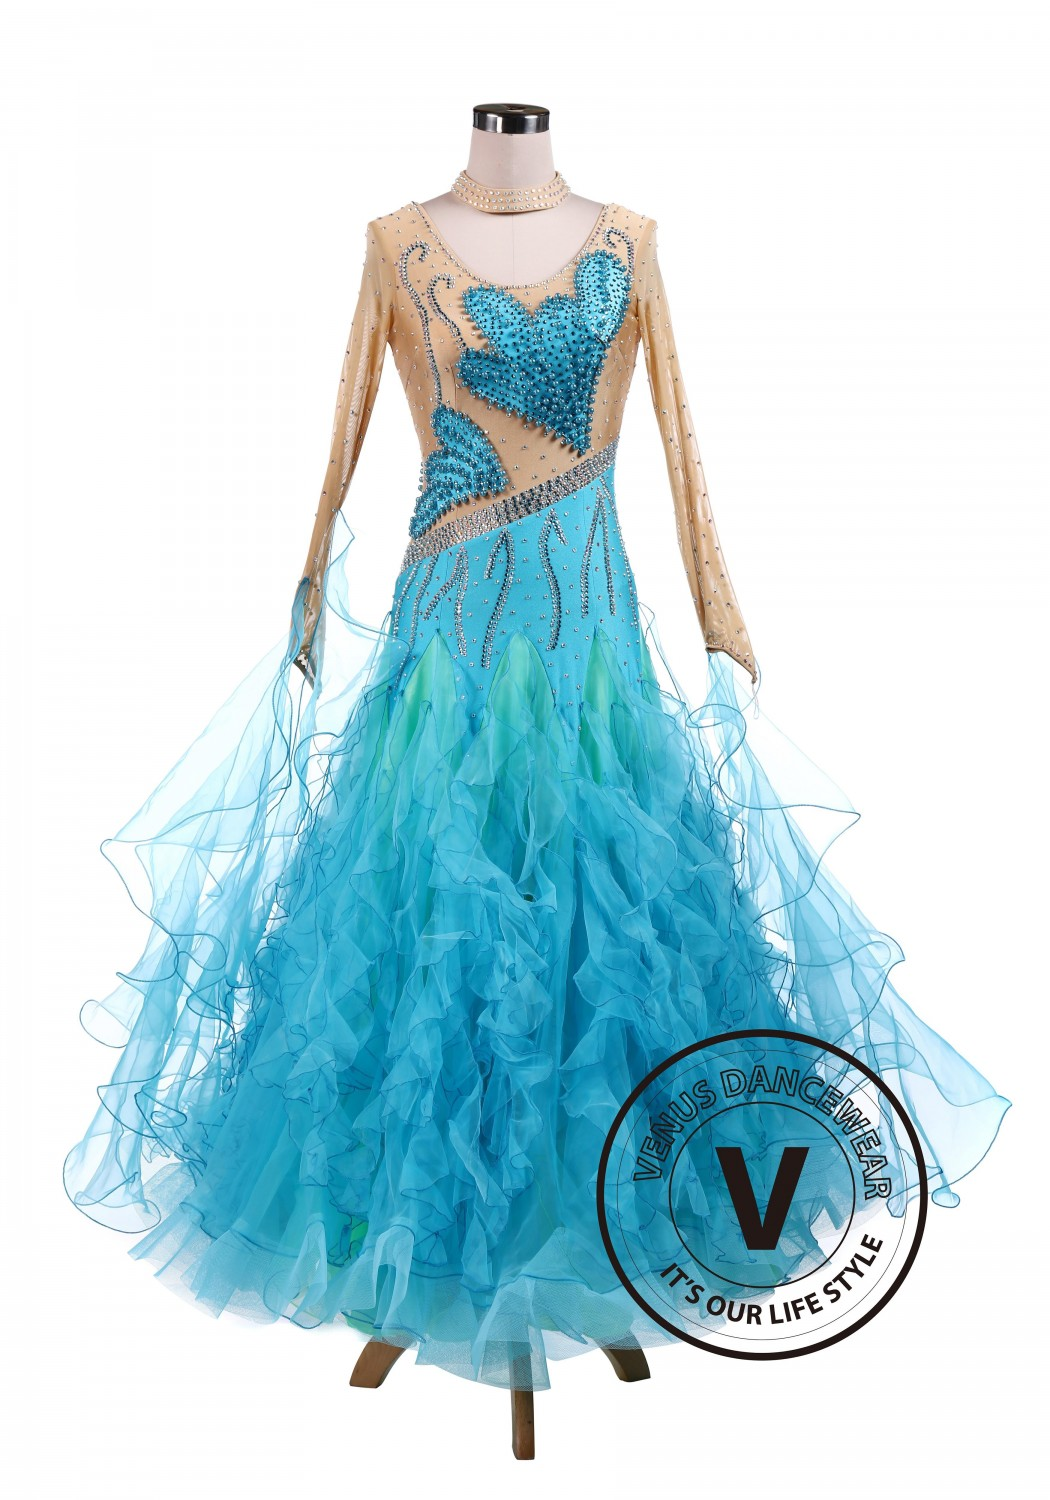 Blue Butterfly Pearl Ballroom Competition Dress Tango Waltz Dancing Dress